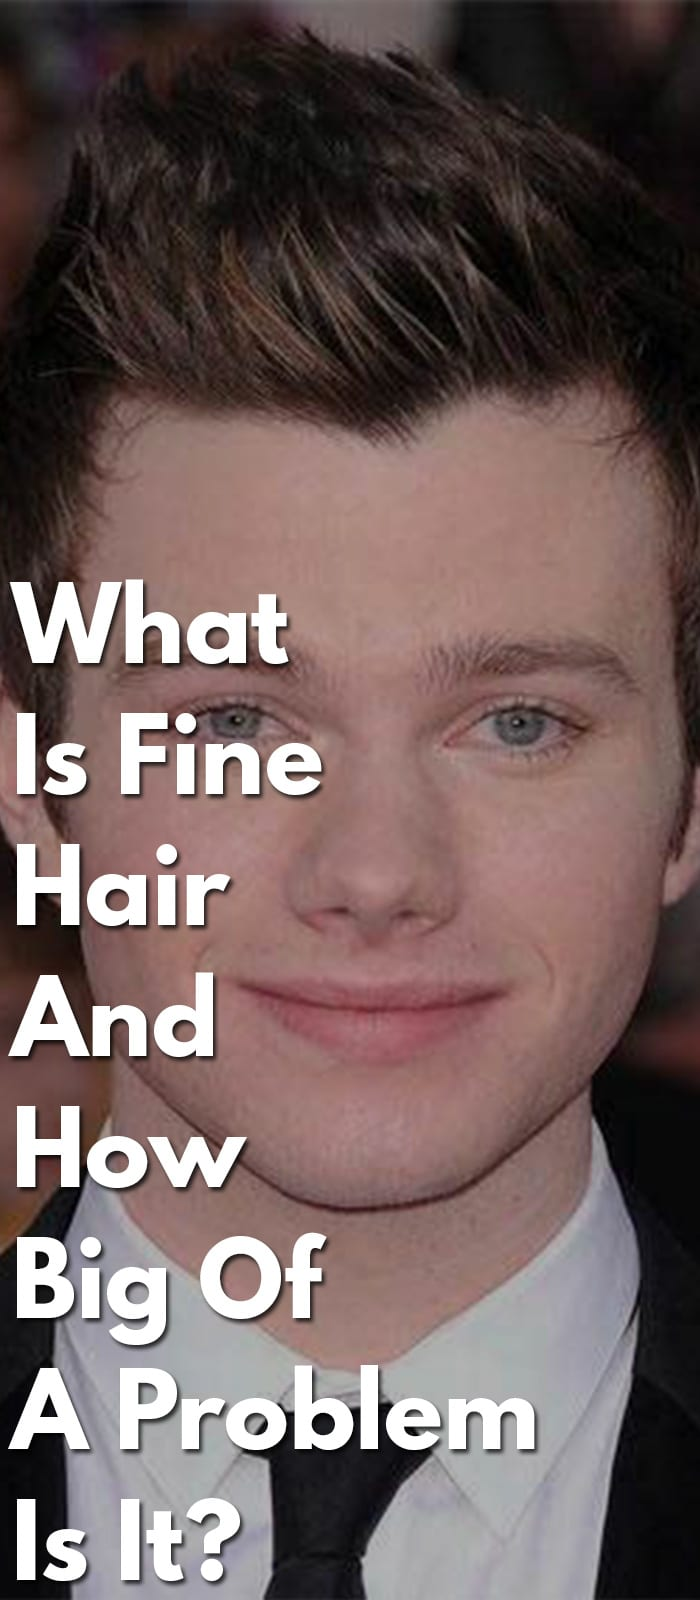 What-Is-Fine-Hair-And-How-Big-Of-A-Problem-Is-It